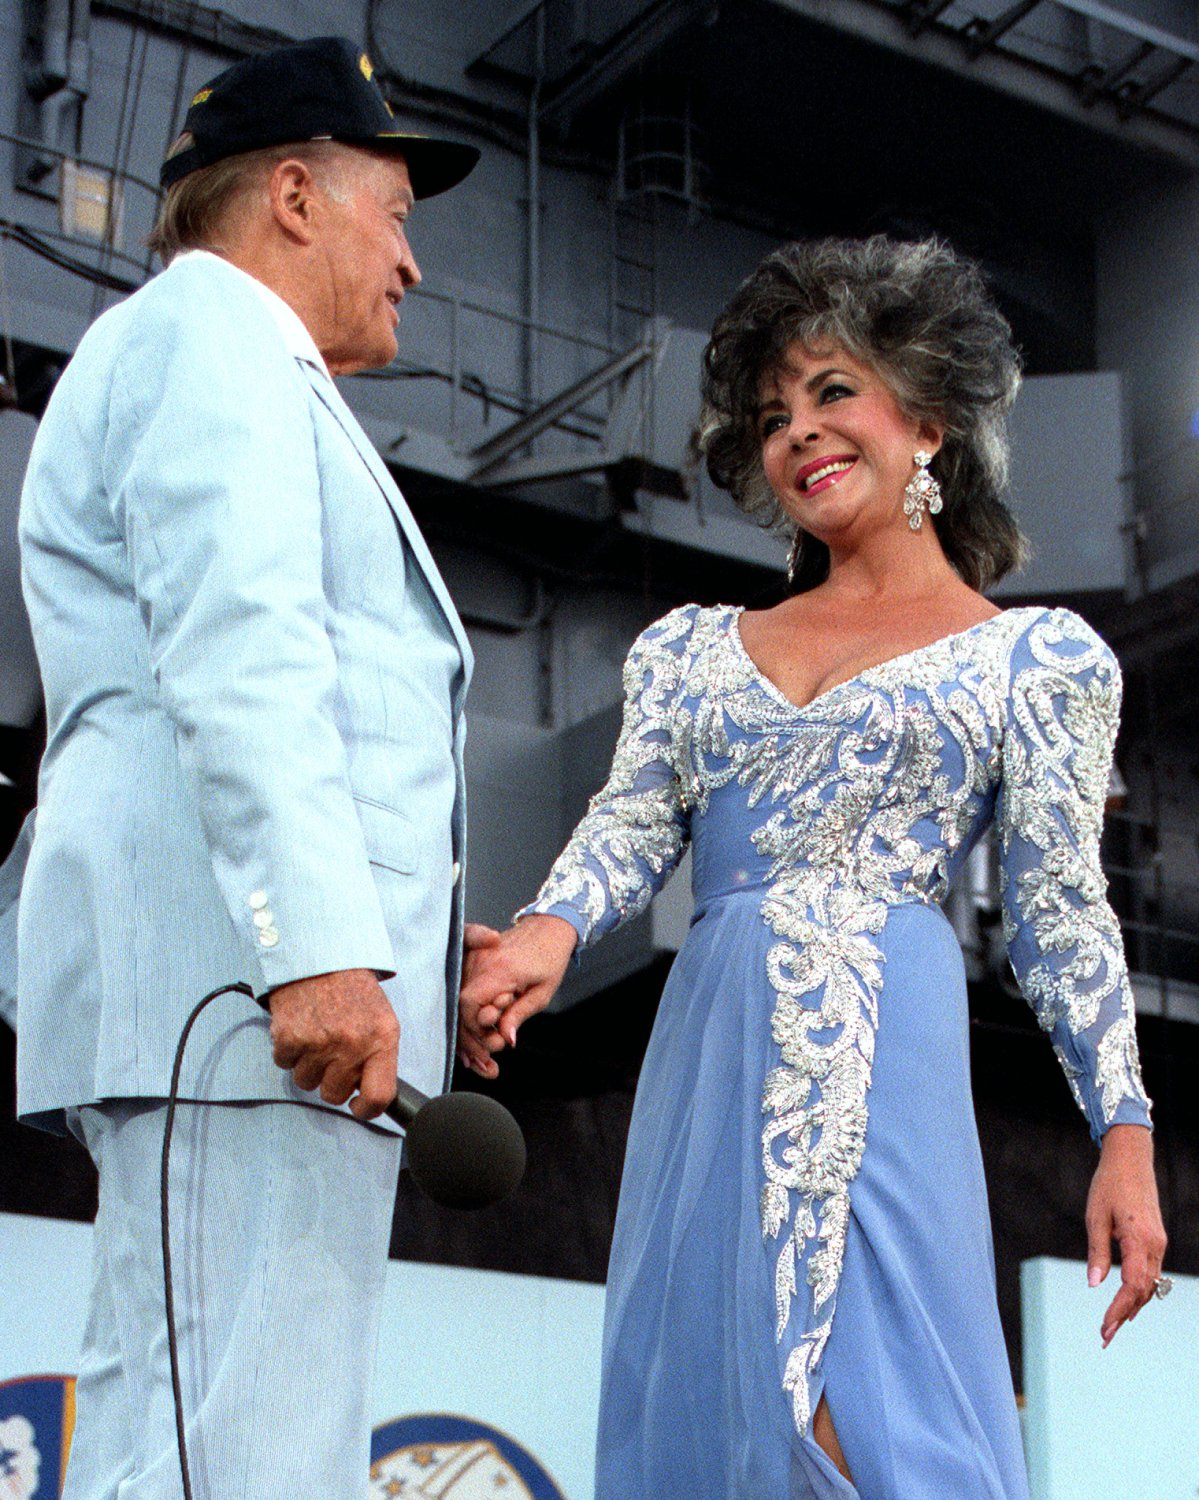 BOB HOPE & ELIZABETH TAYLOR ON USS LEXINGTON FOR USO SHOW - 8X10 PHOTO (BB-514)